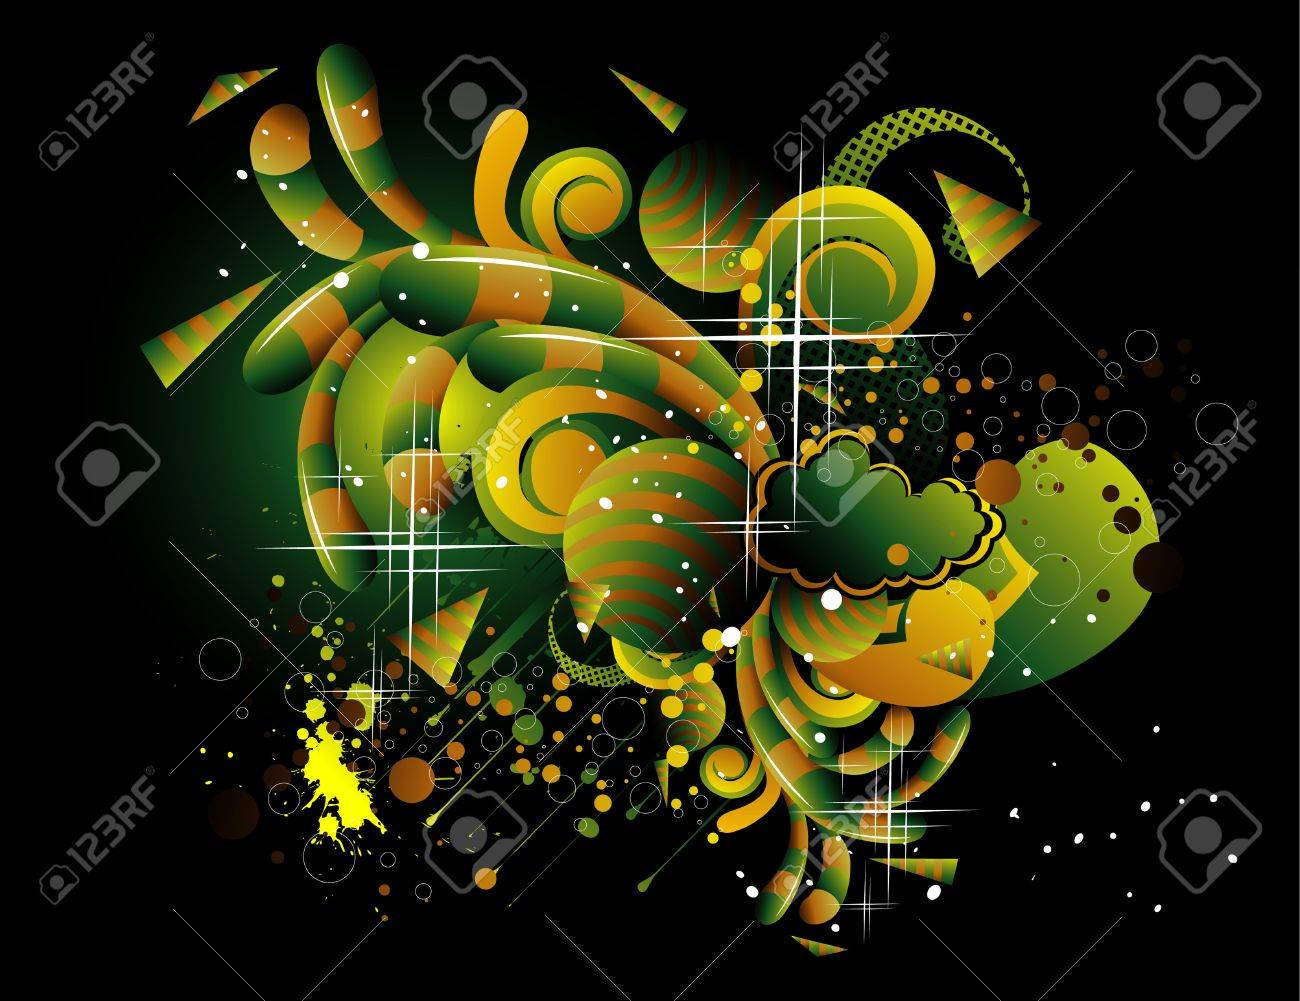 vector background illustration Stock Vector - 6185008